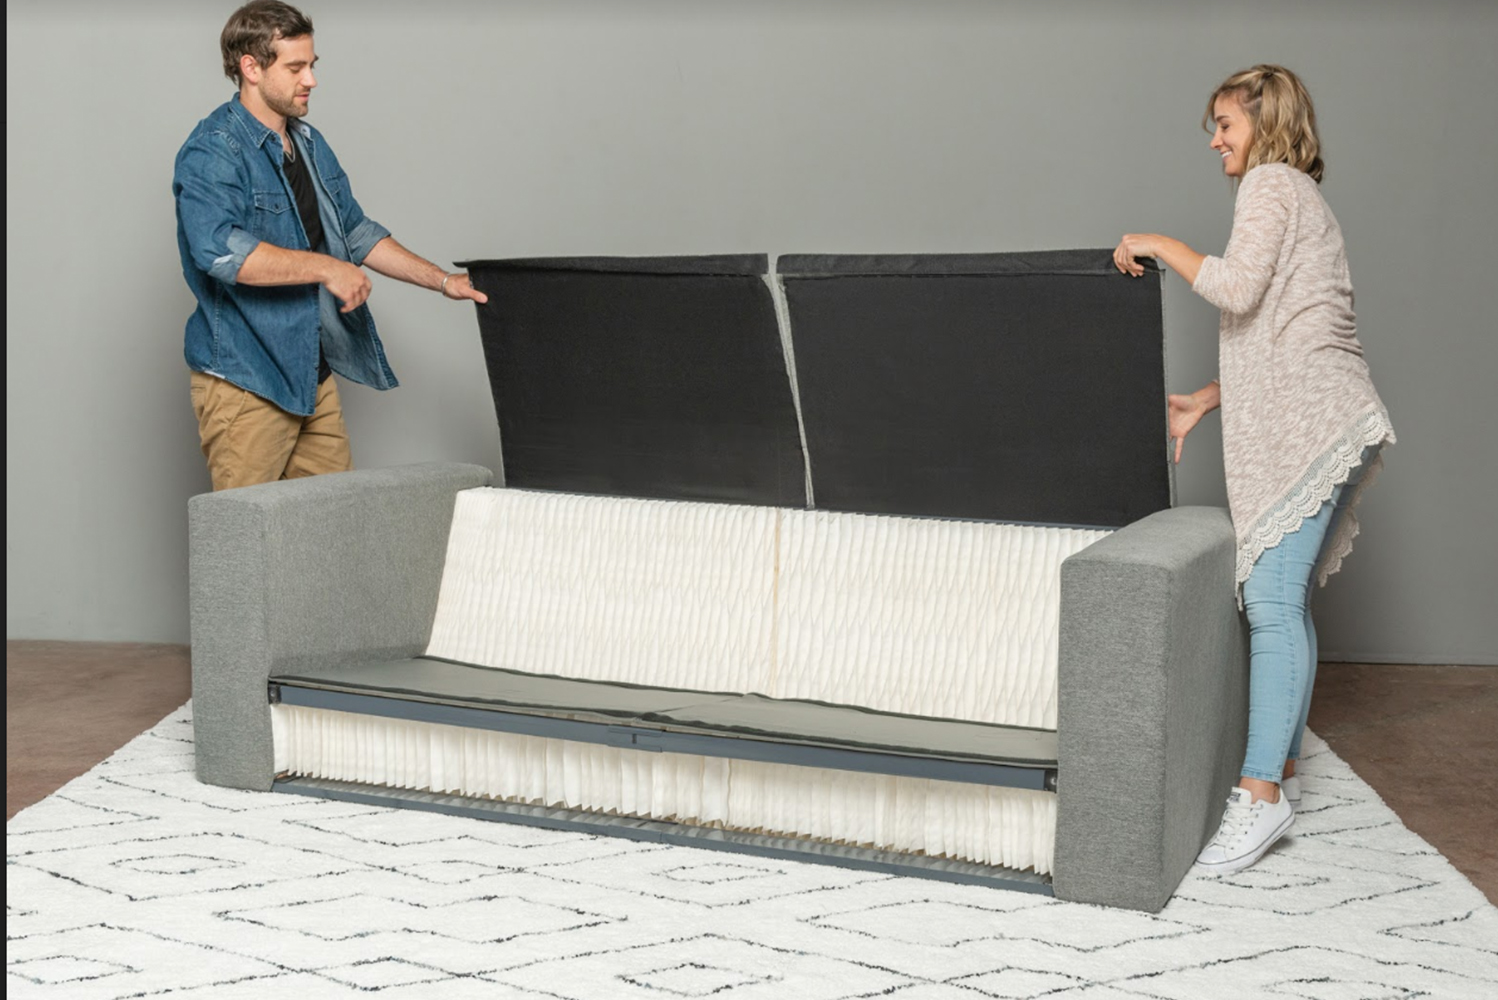 The sofa can hold up to 1,000 lbs. It also easily folds into itself for convenient transport.